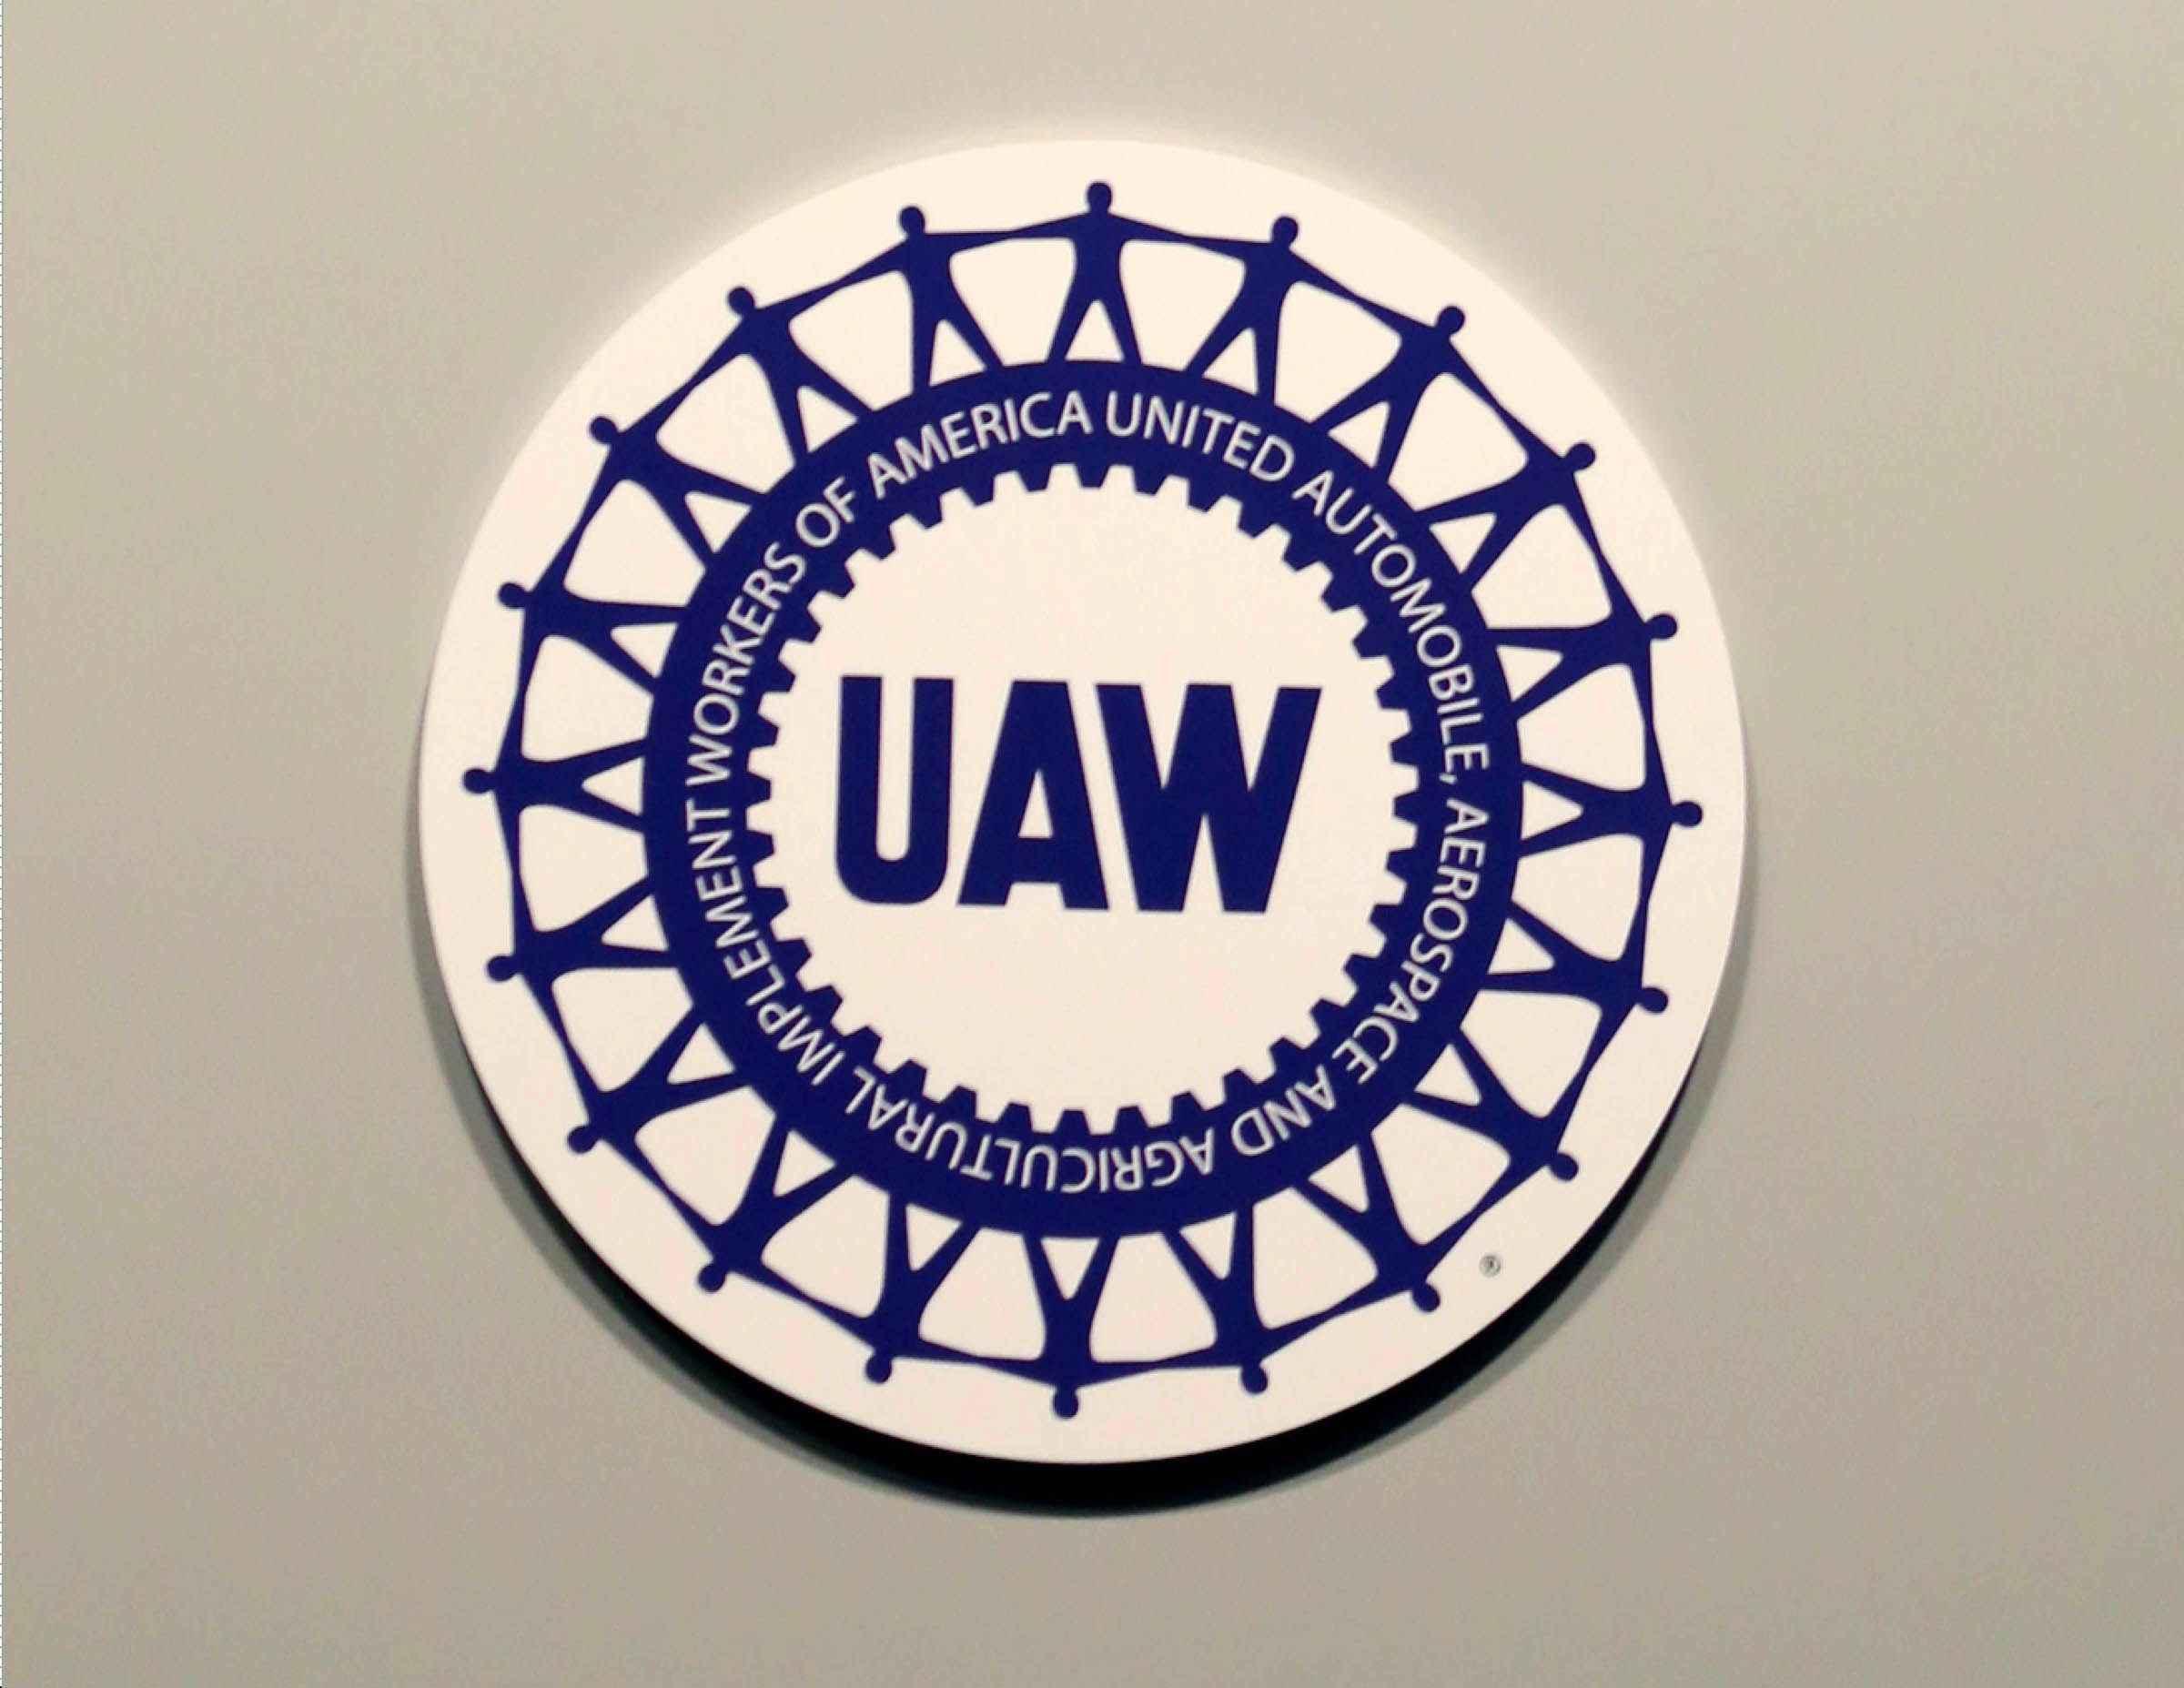 UAW says 'significant' differences remain as contract deadline looms